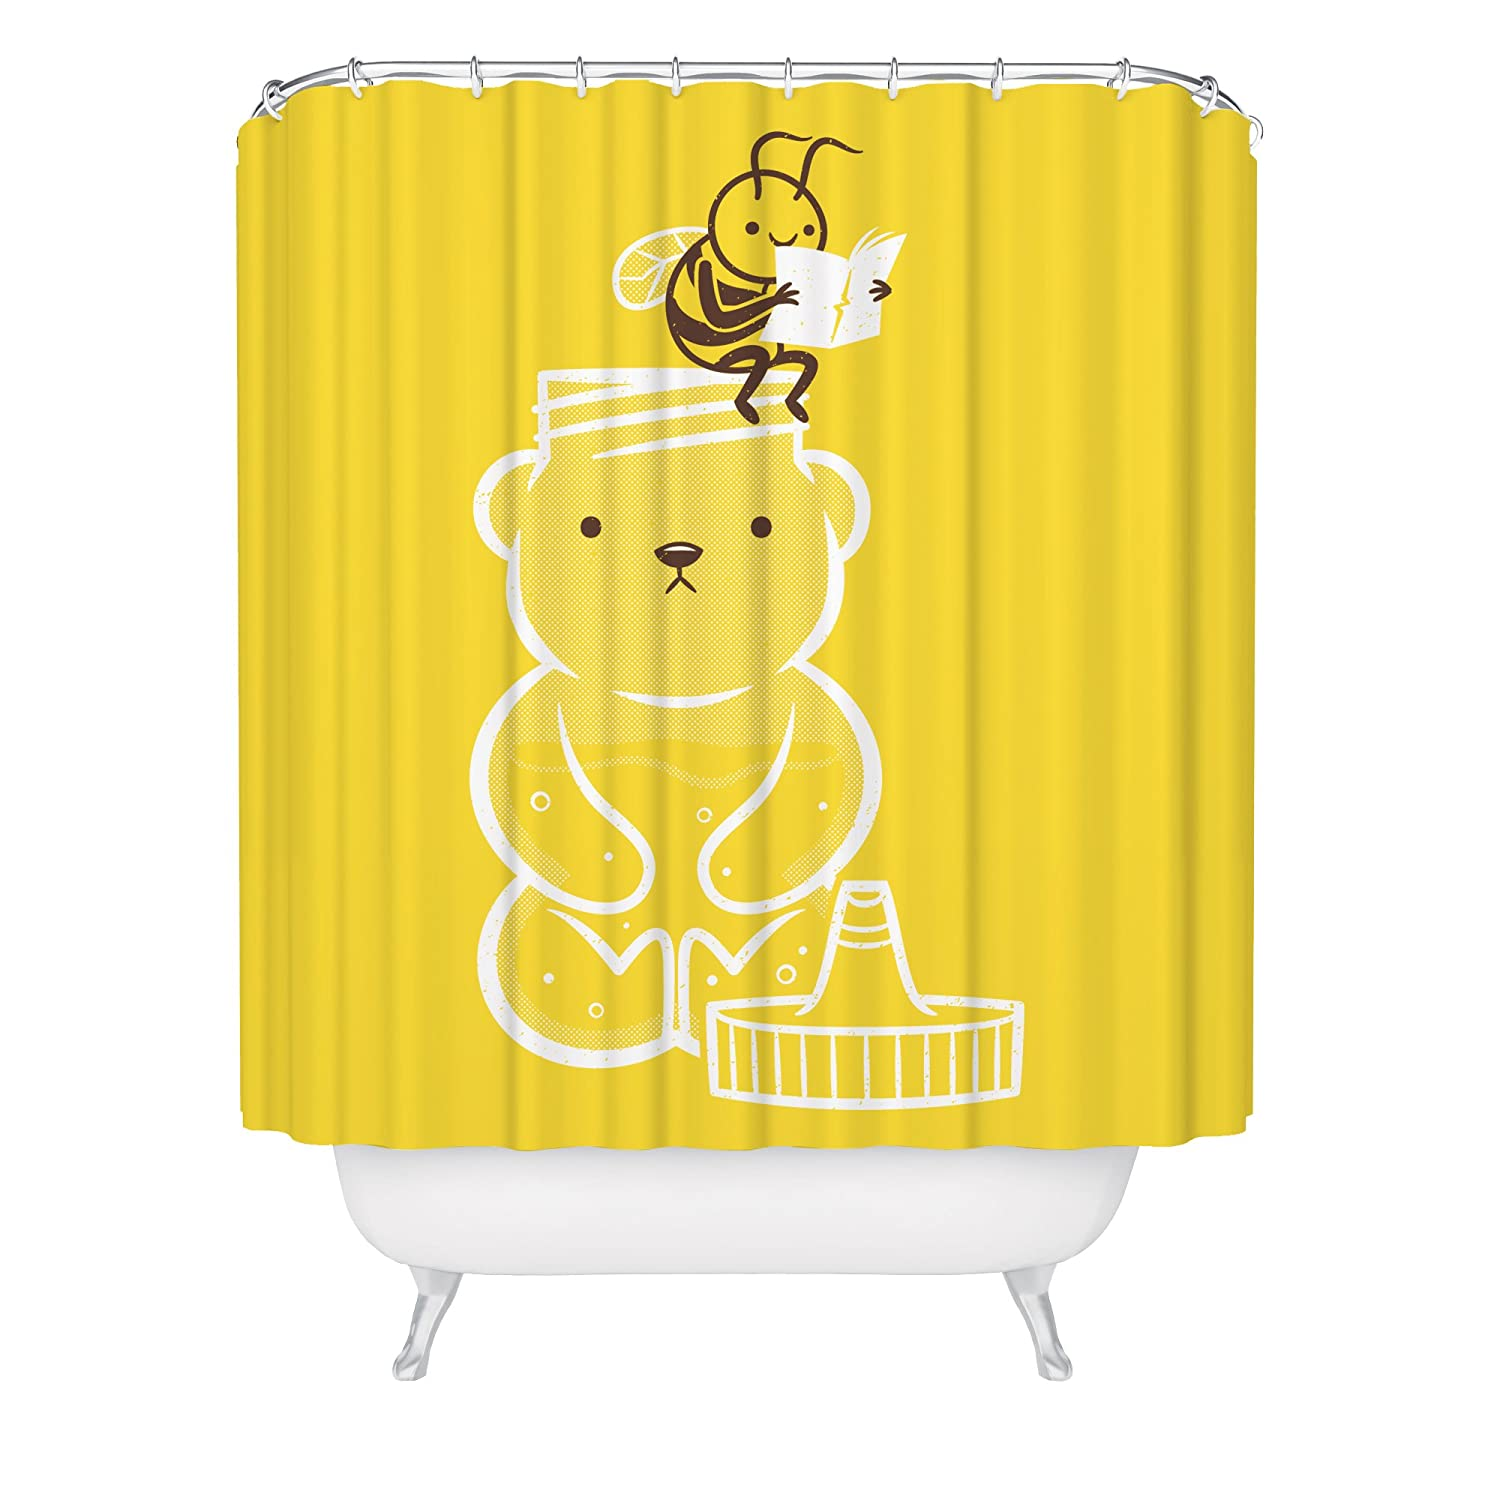 Honey Bear Shower Curtain / Bee Shower Curtain / Cute Funny Bee Artwork / Makng Honey / Bathroom Humor / Fabric Shower Curtain / Made in USA / Great Decoration Gift for Bathroom